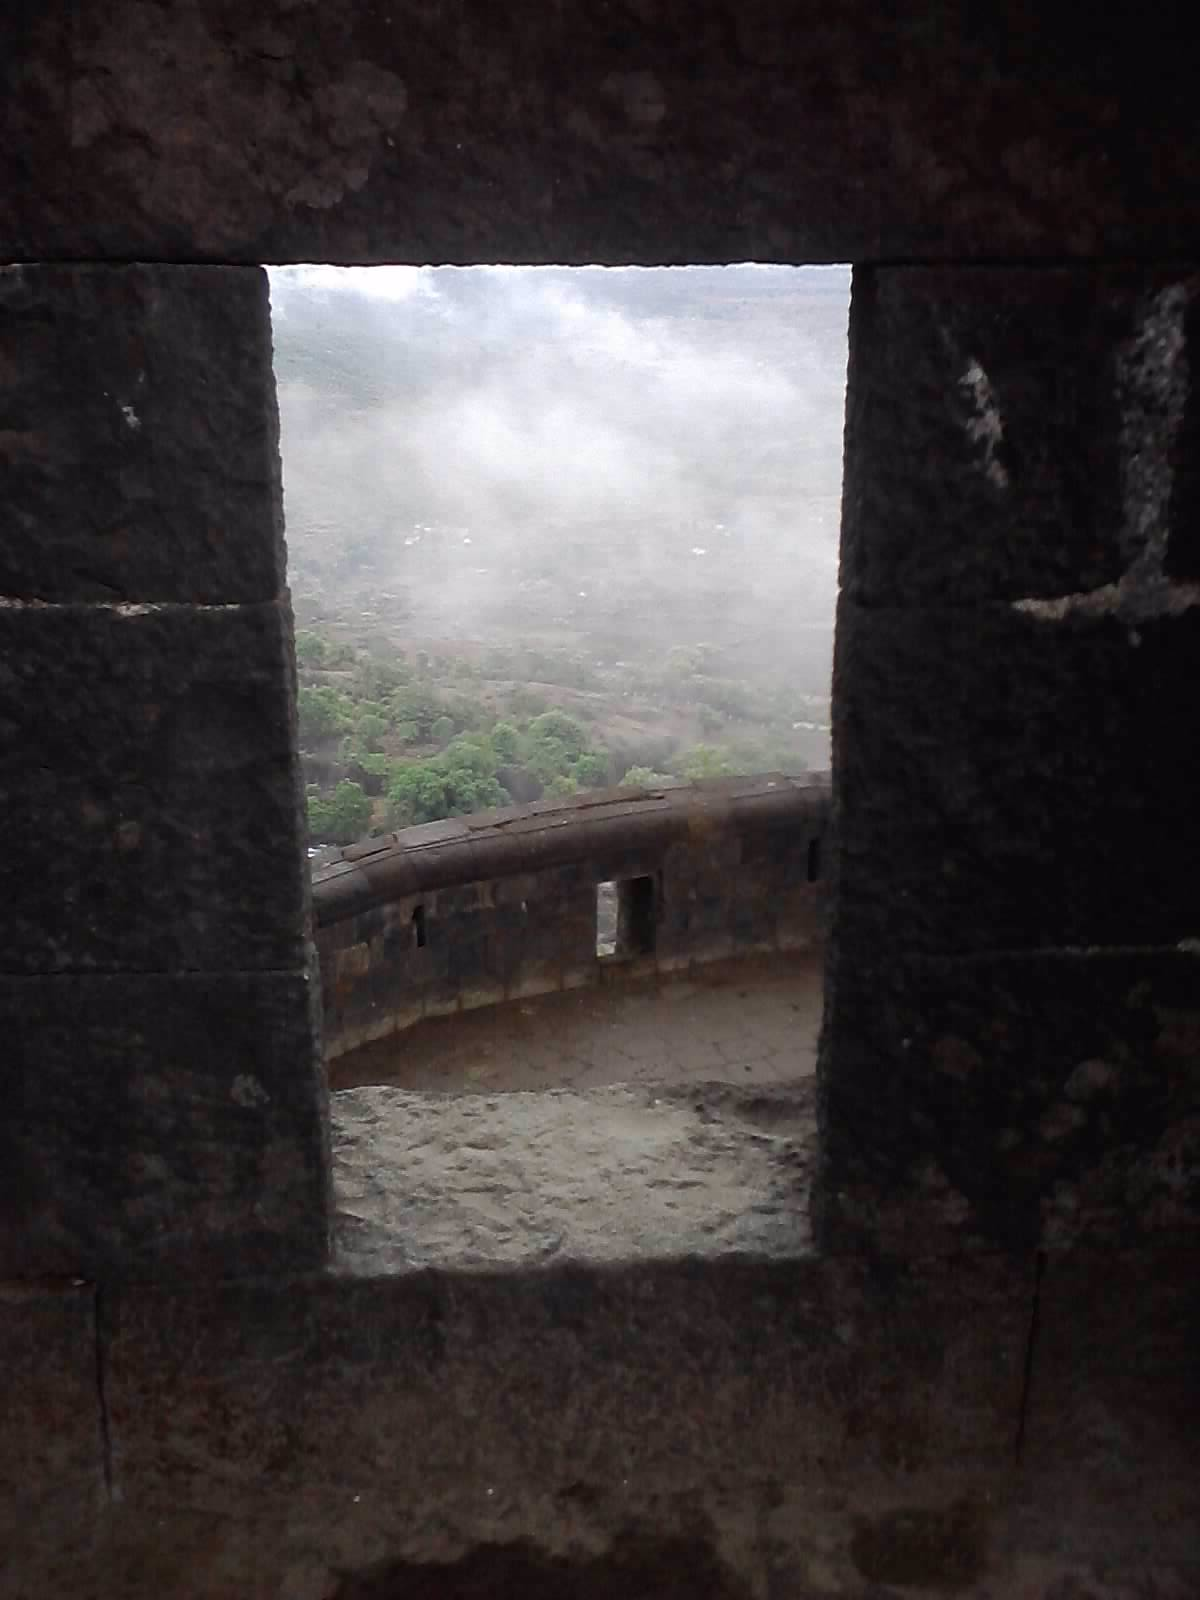 clicked at fort in lonavala, clouds can be seen through window.